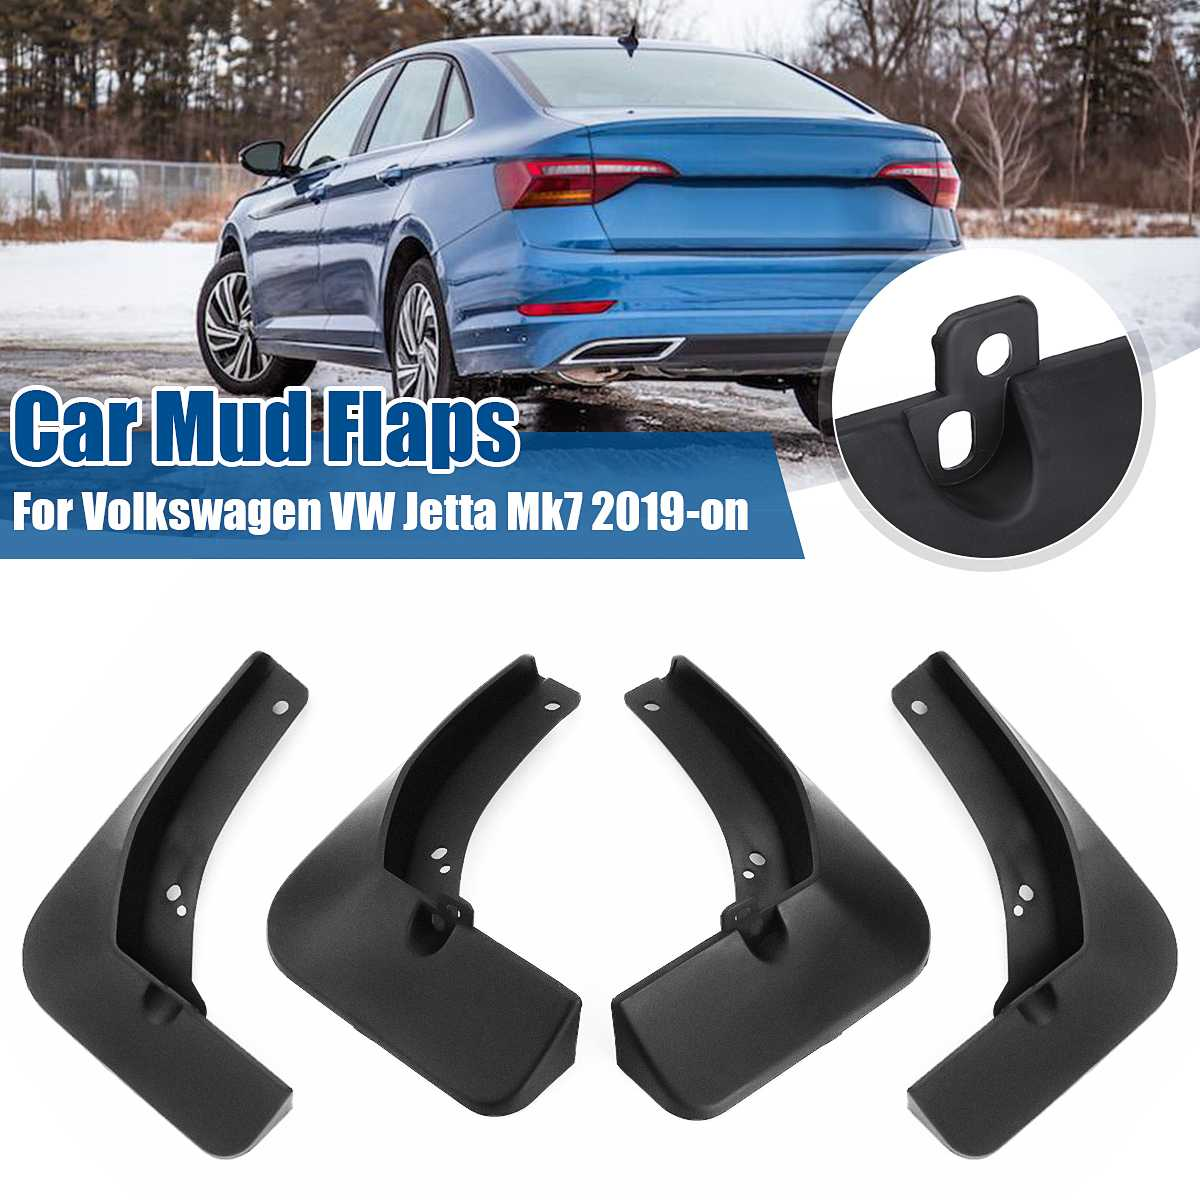 Car Mud Flaps Splash Guards Mudguards <font><b>Mudflaps</b></font> for Fender Mud Flap Car Accessories For <font><b>VW</b></font> Jetta Mk7 2019 2020 image